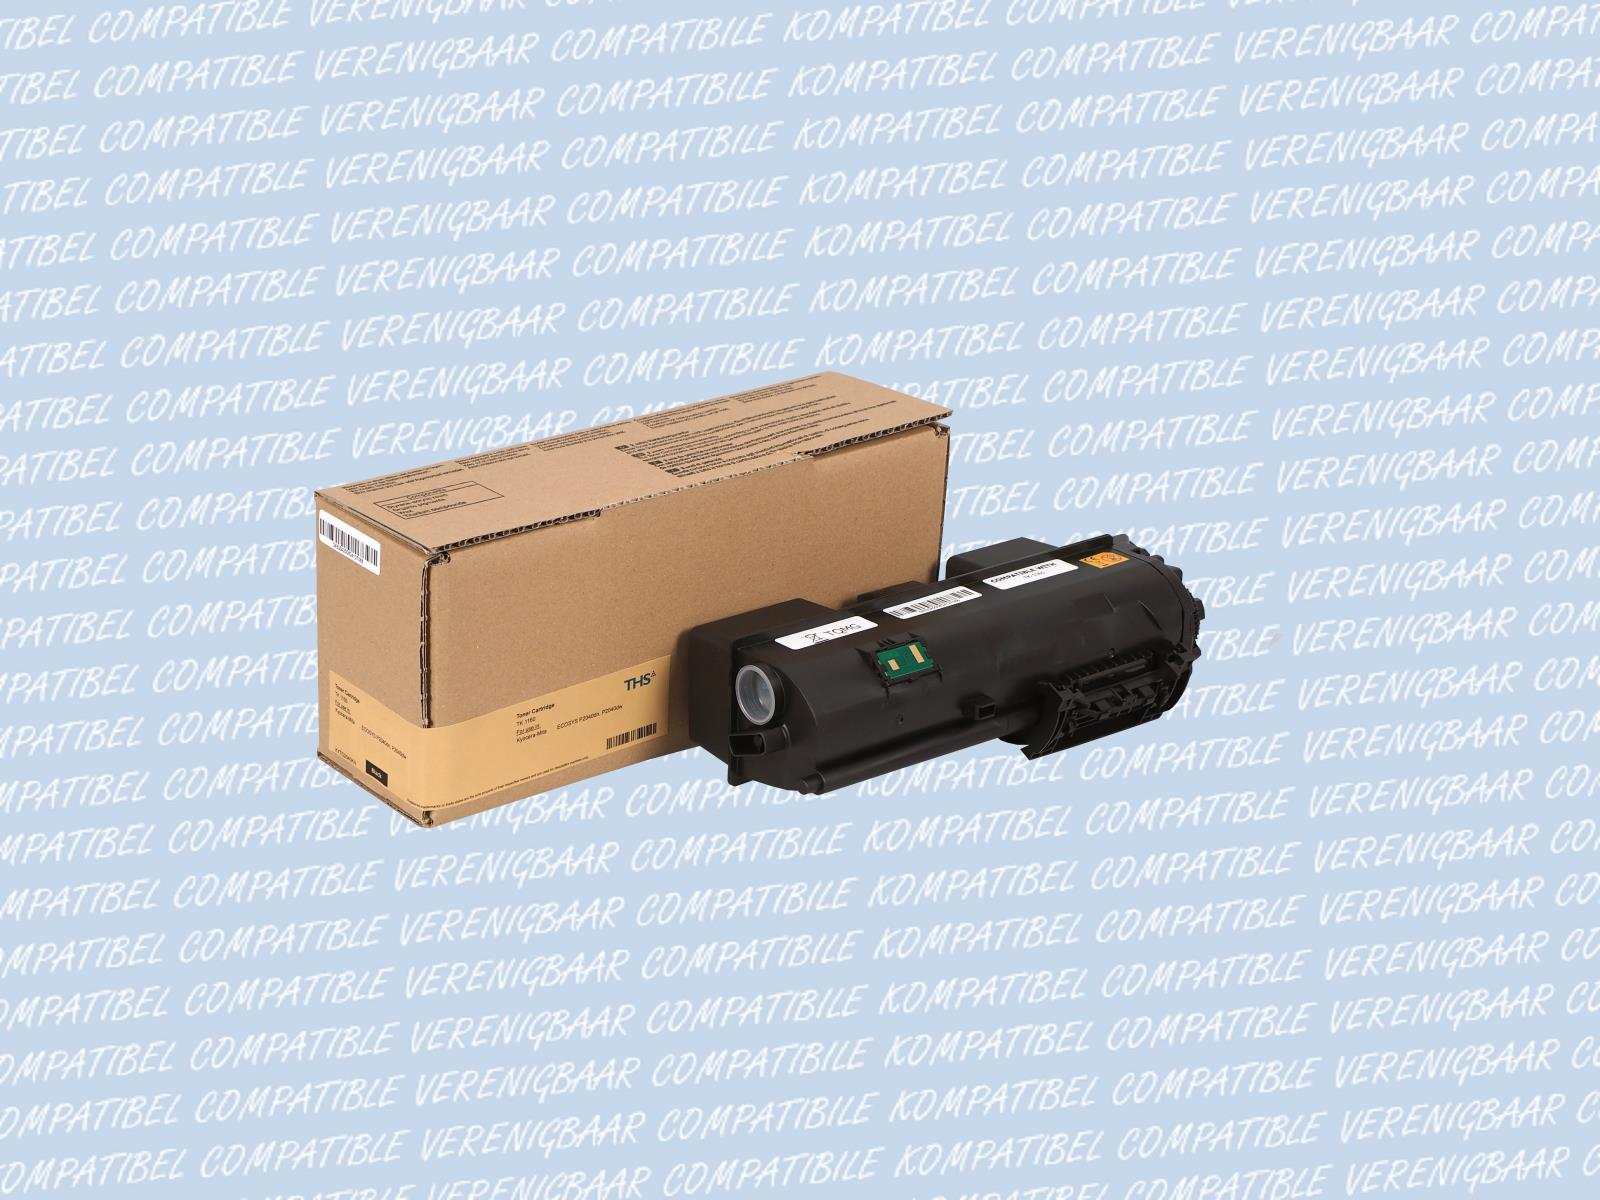 Compatible Toner black Typ: TK-1160 for Kyocera ECOSYS: P2040dn / P2040dw